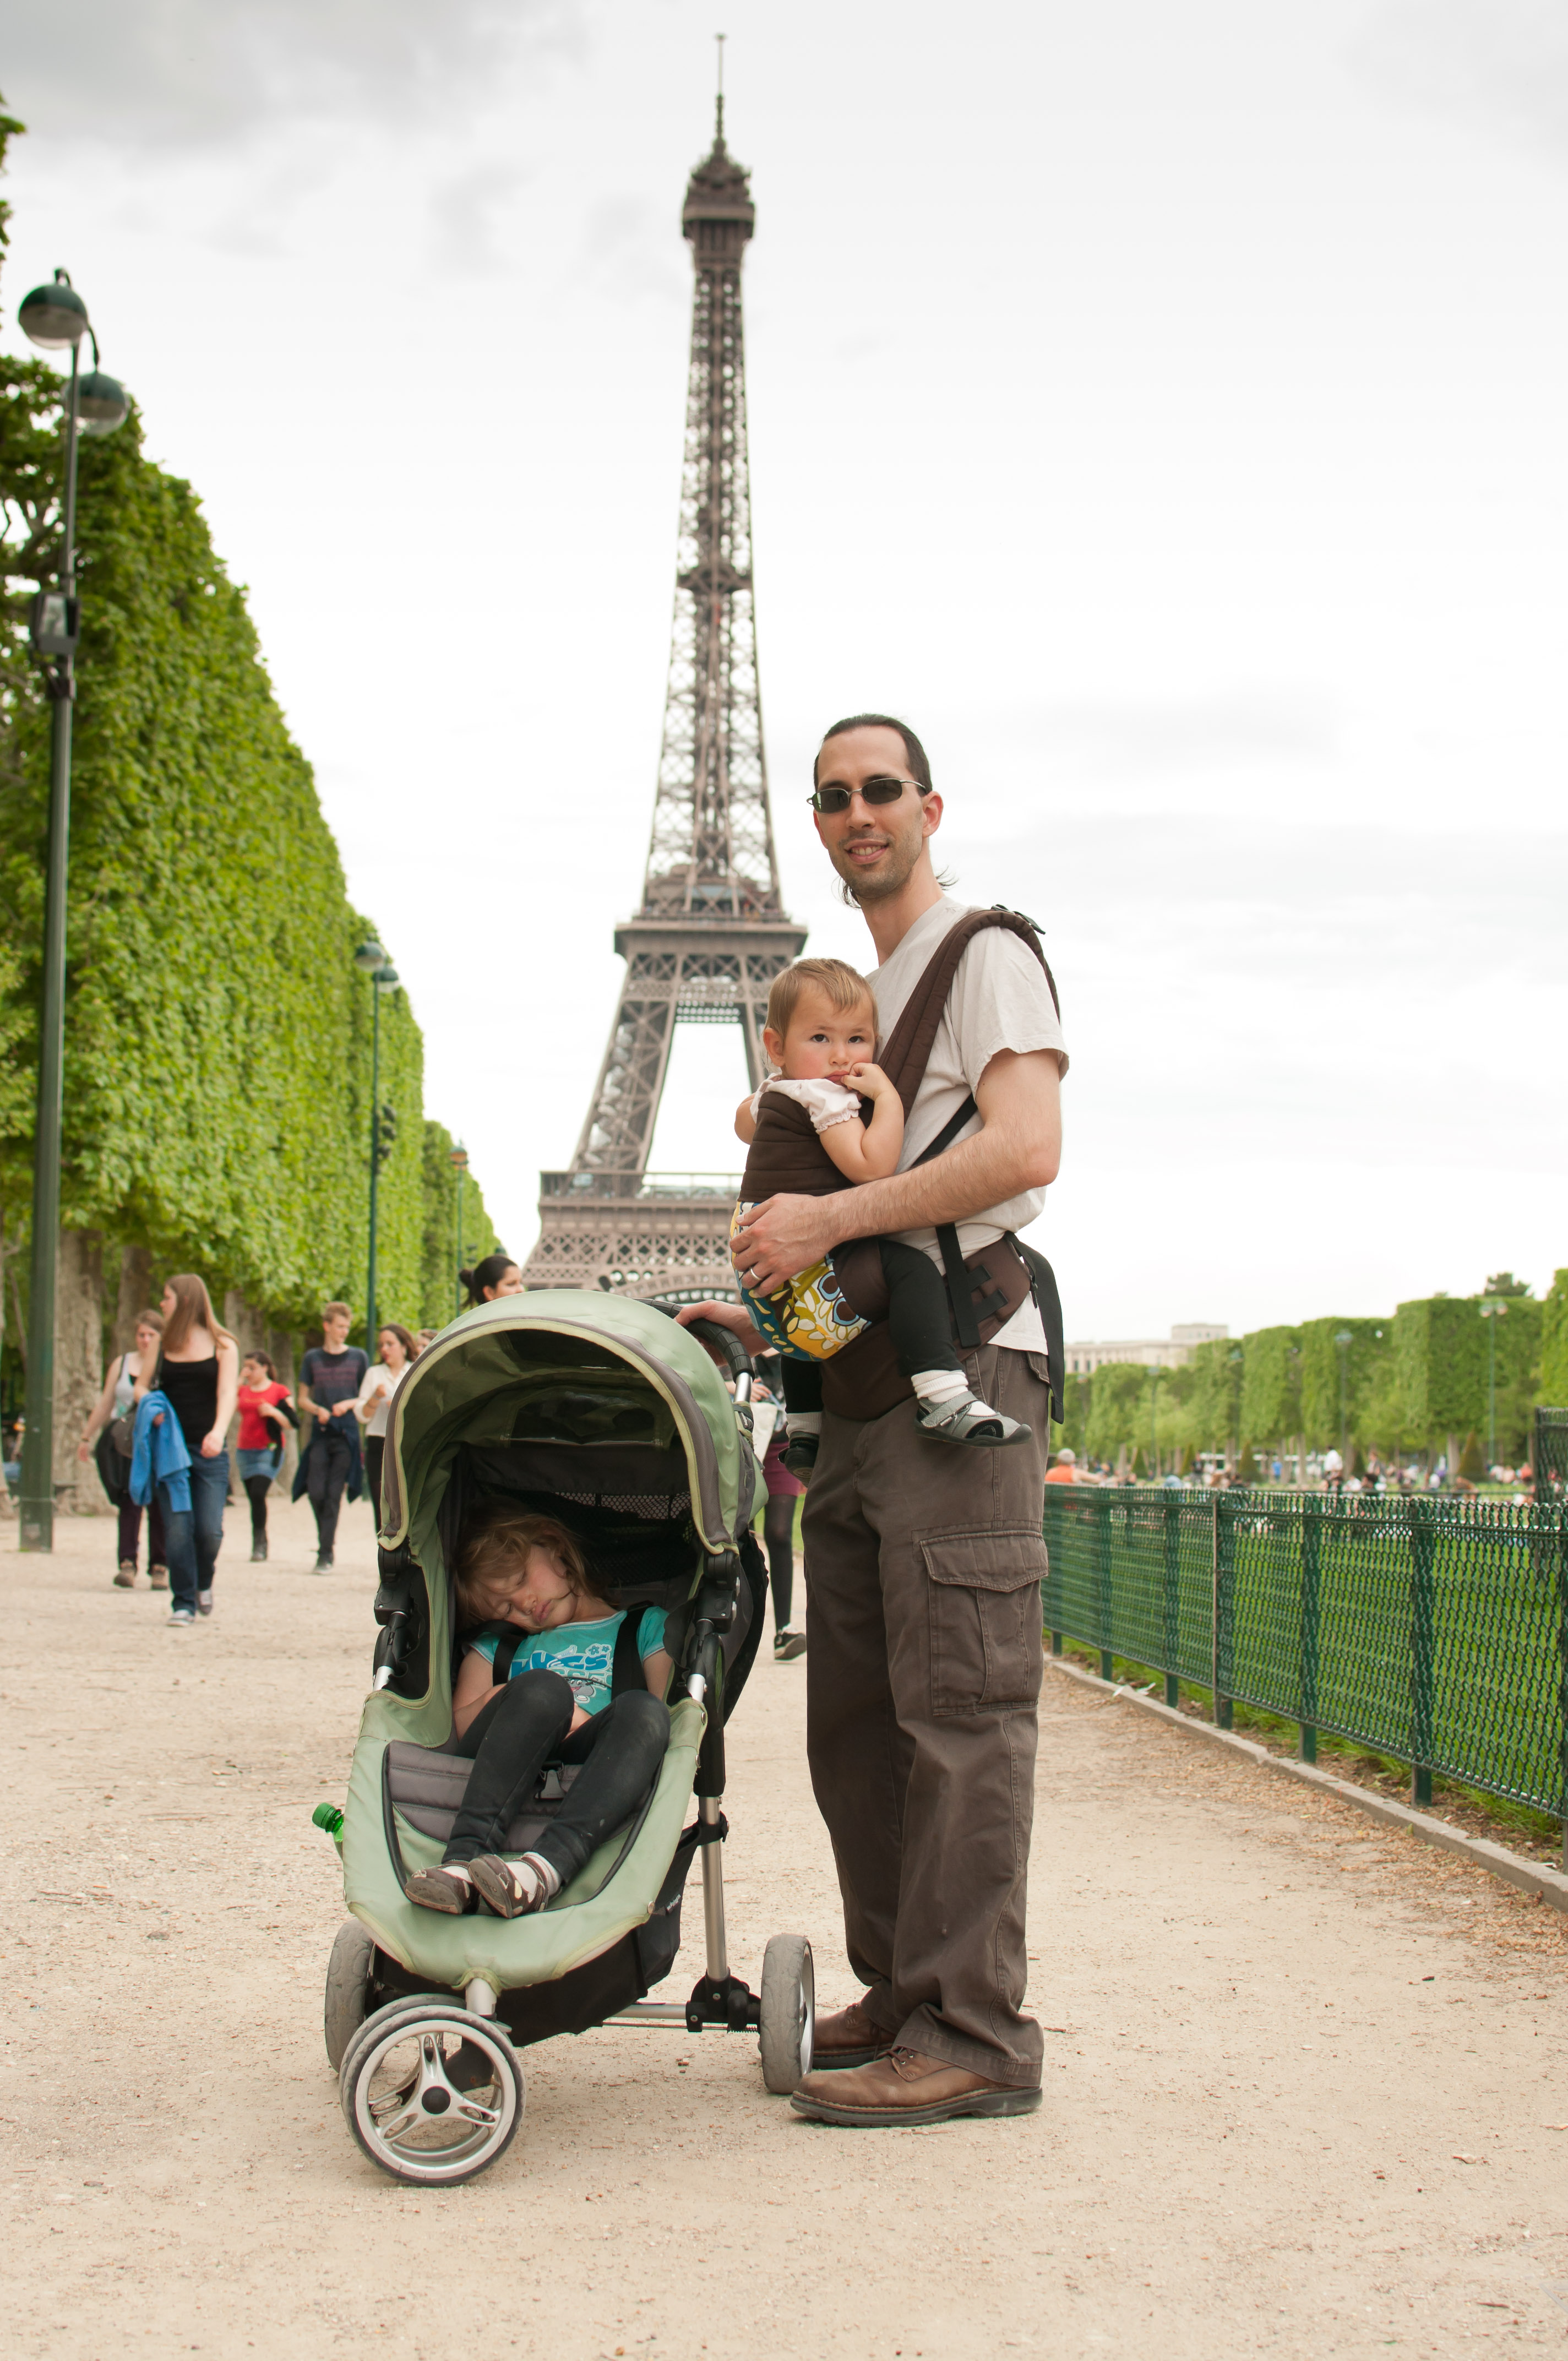 Josie, Celia and Jordi in front of the Eiffel tower